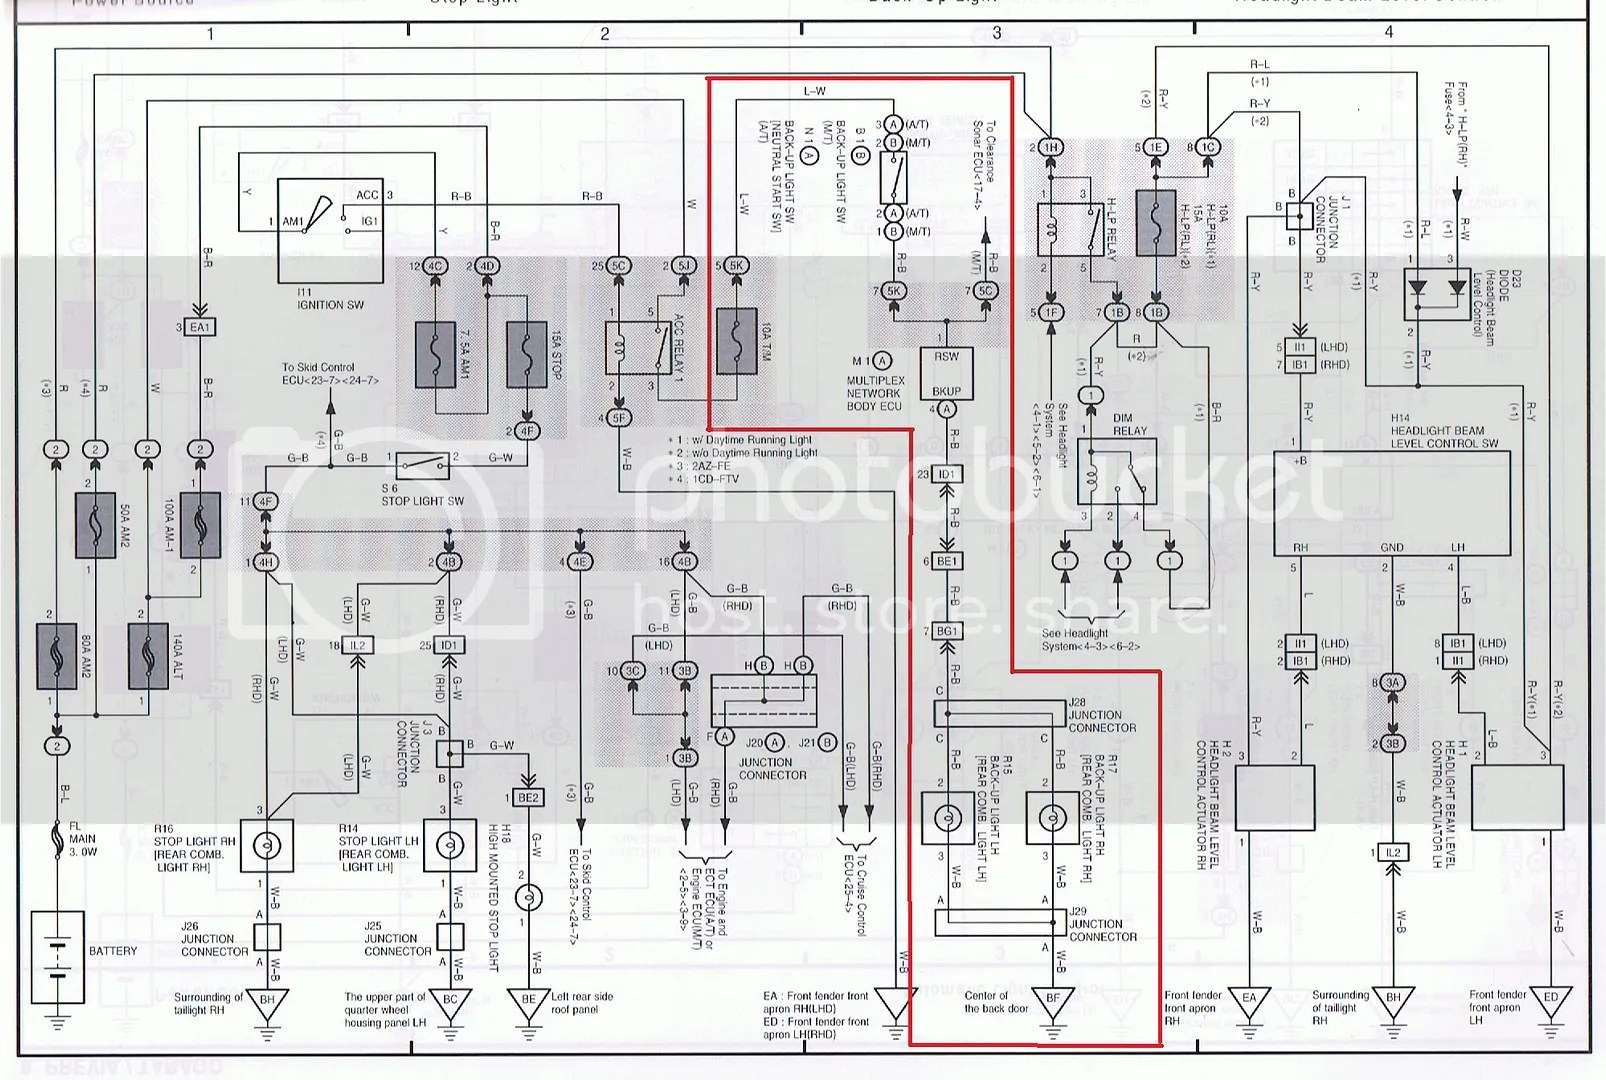 Wiring diagrams for toyota estima